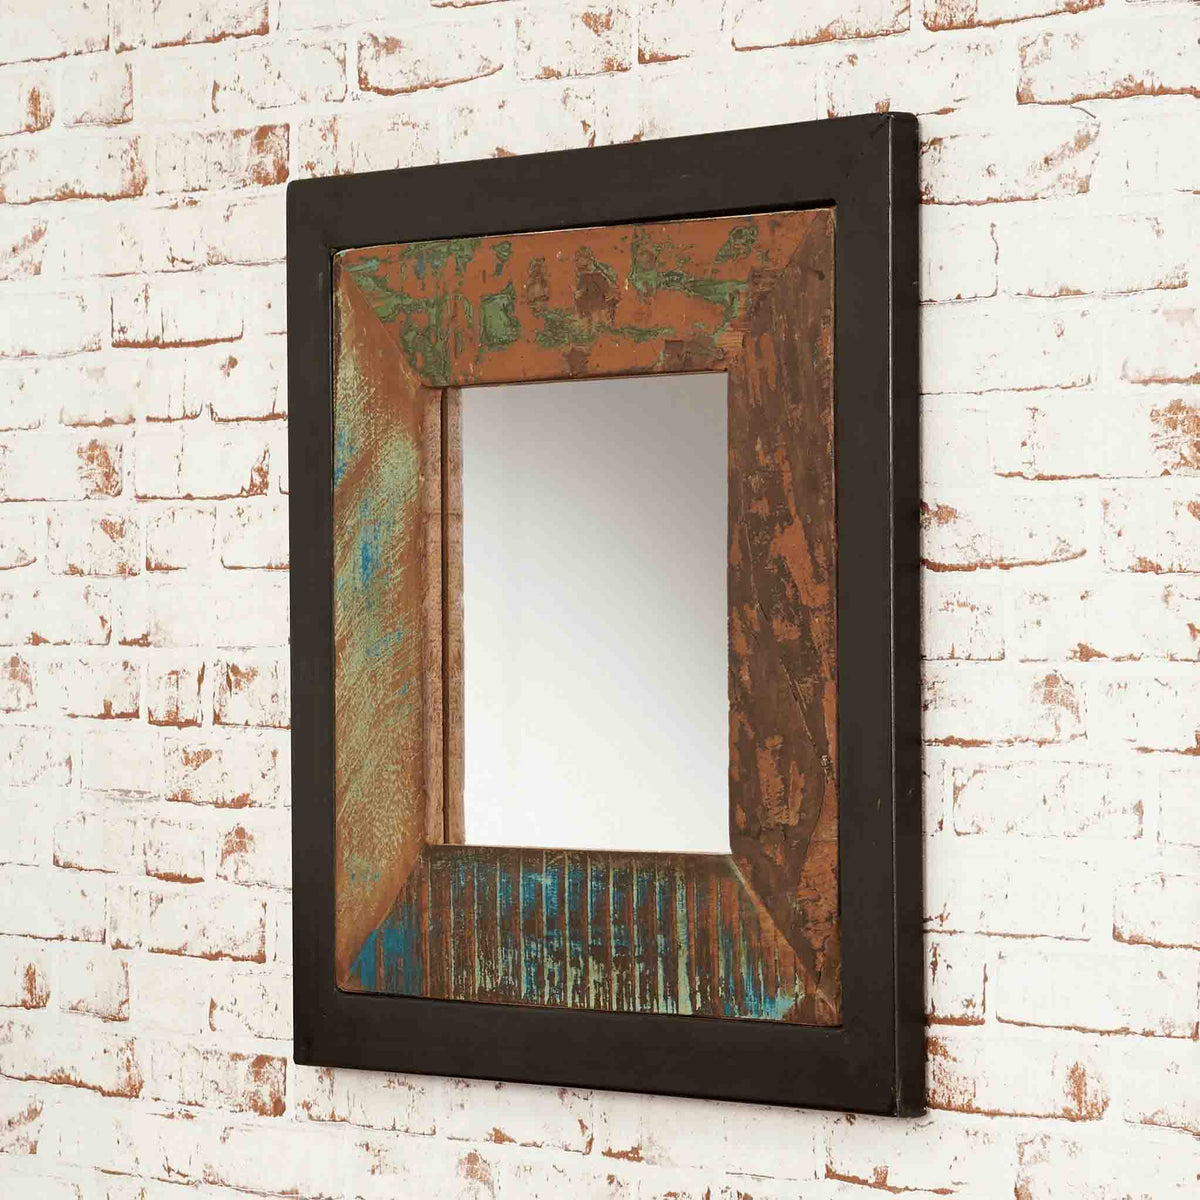 The Urban Chic Industrial Reclaimed Wood Small Square Mirror with Steel Frame